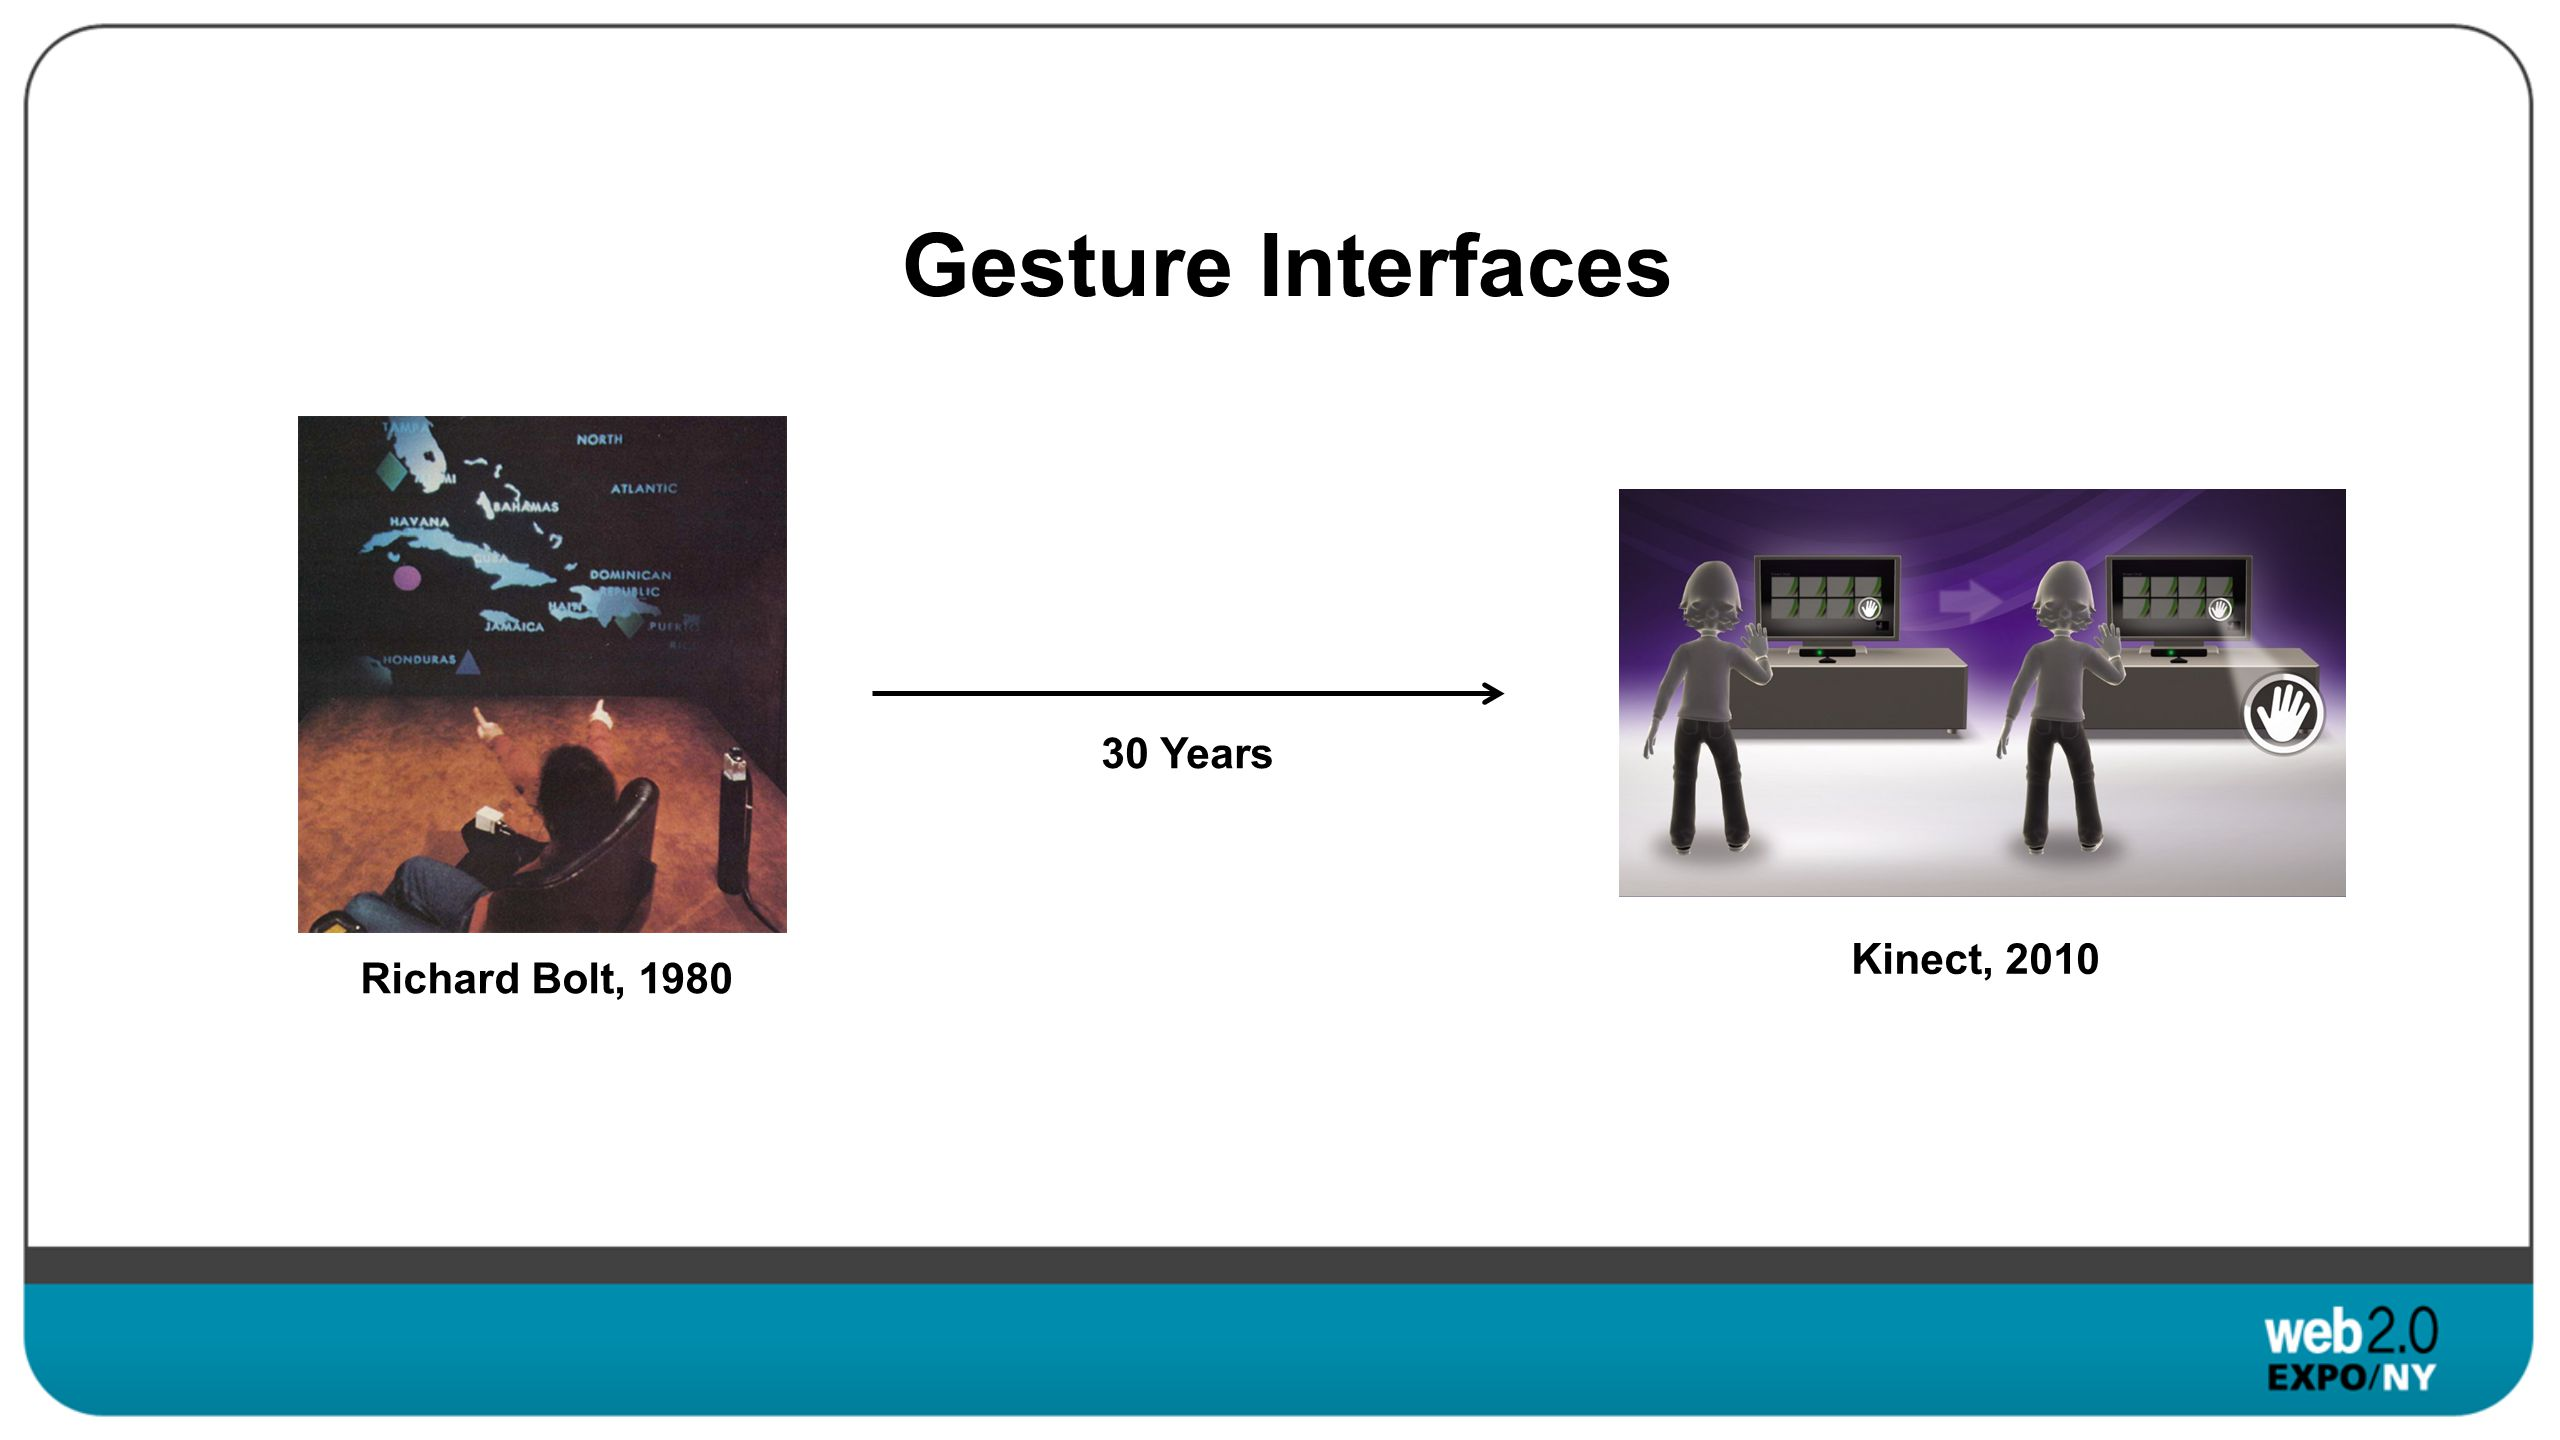 Gesture Interfaces 30 Years Kinect, 2010 Richard Bolt, 1980